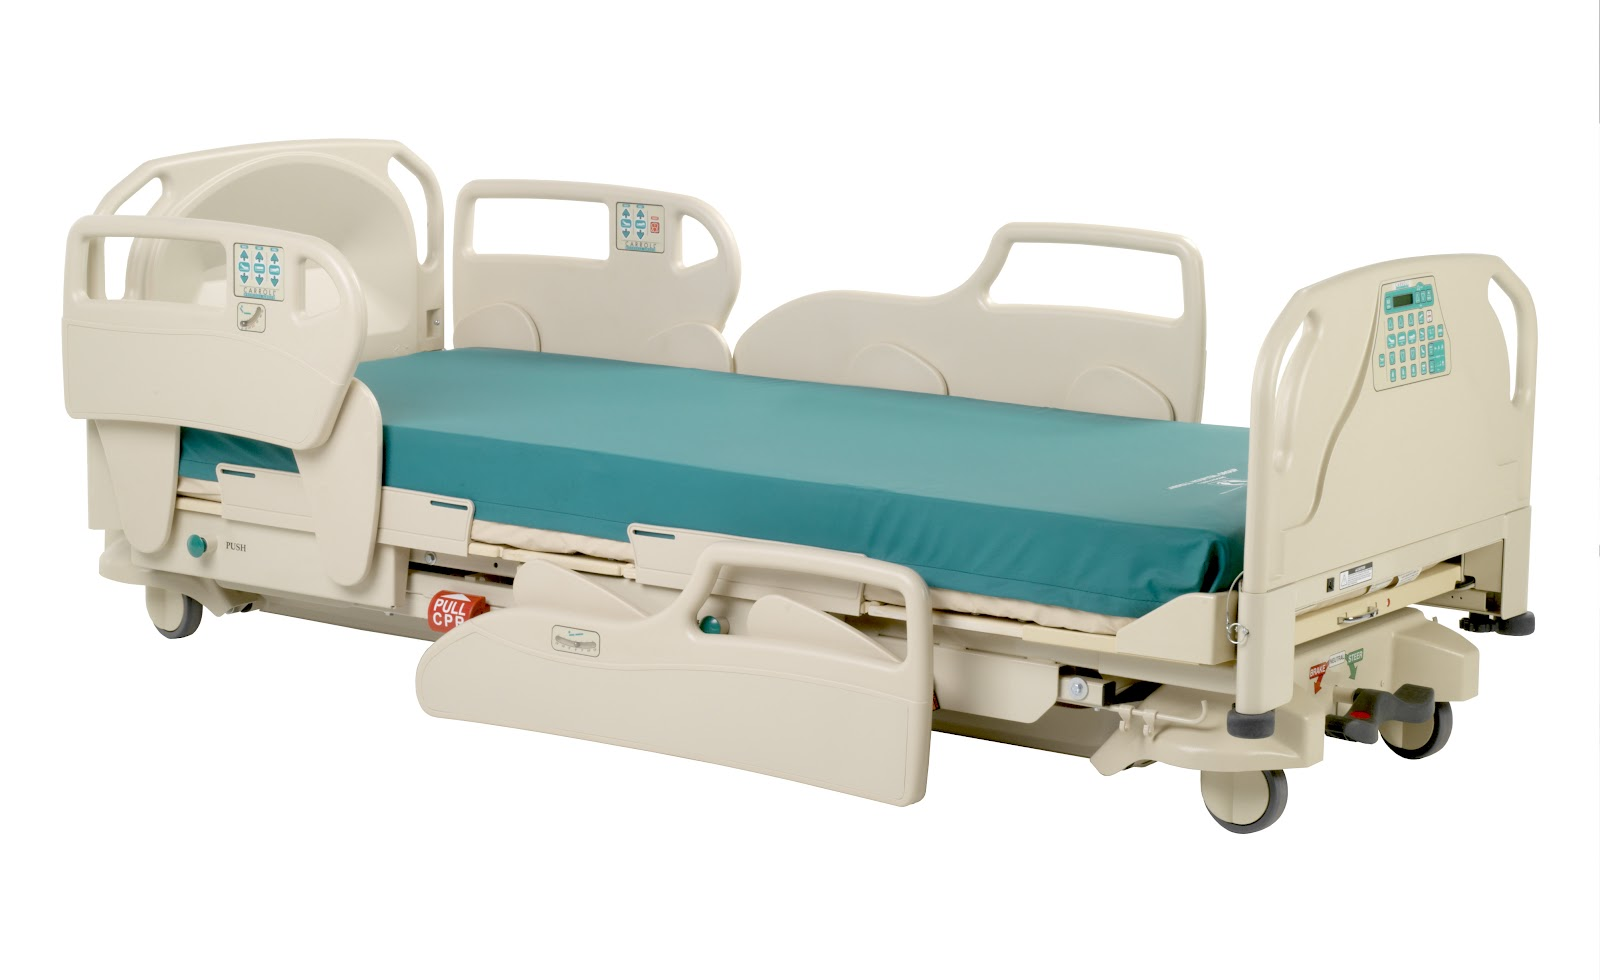 chg hospital beds: 5 more reasons to use a low hospital bed